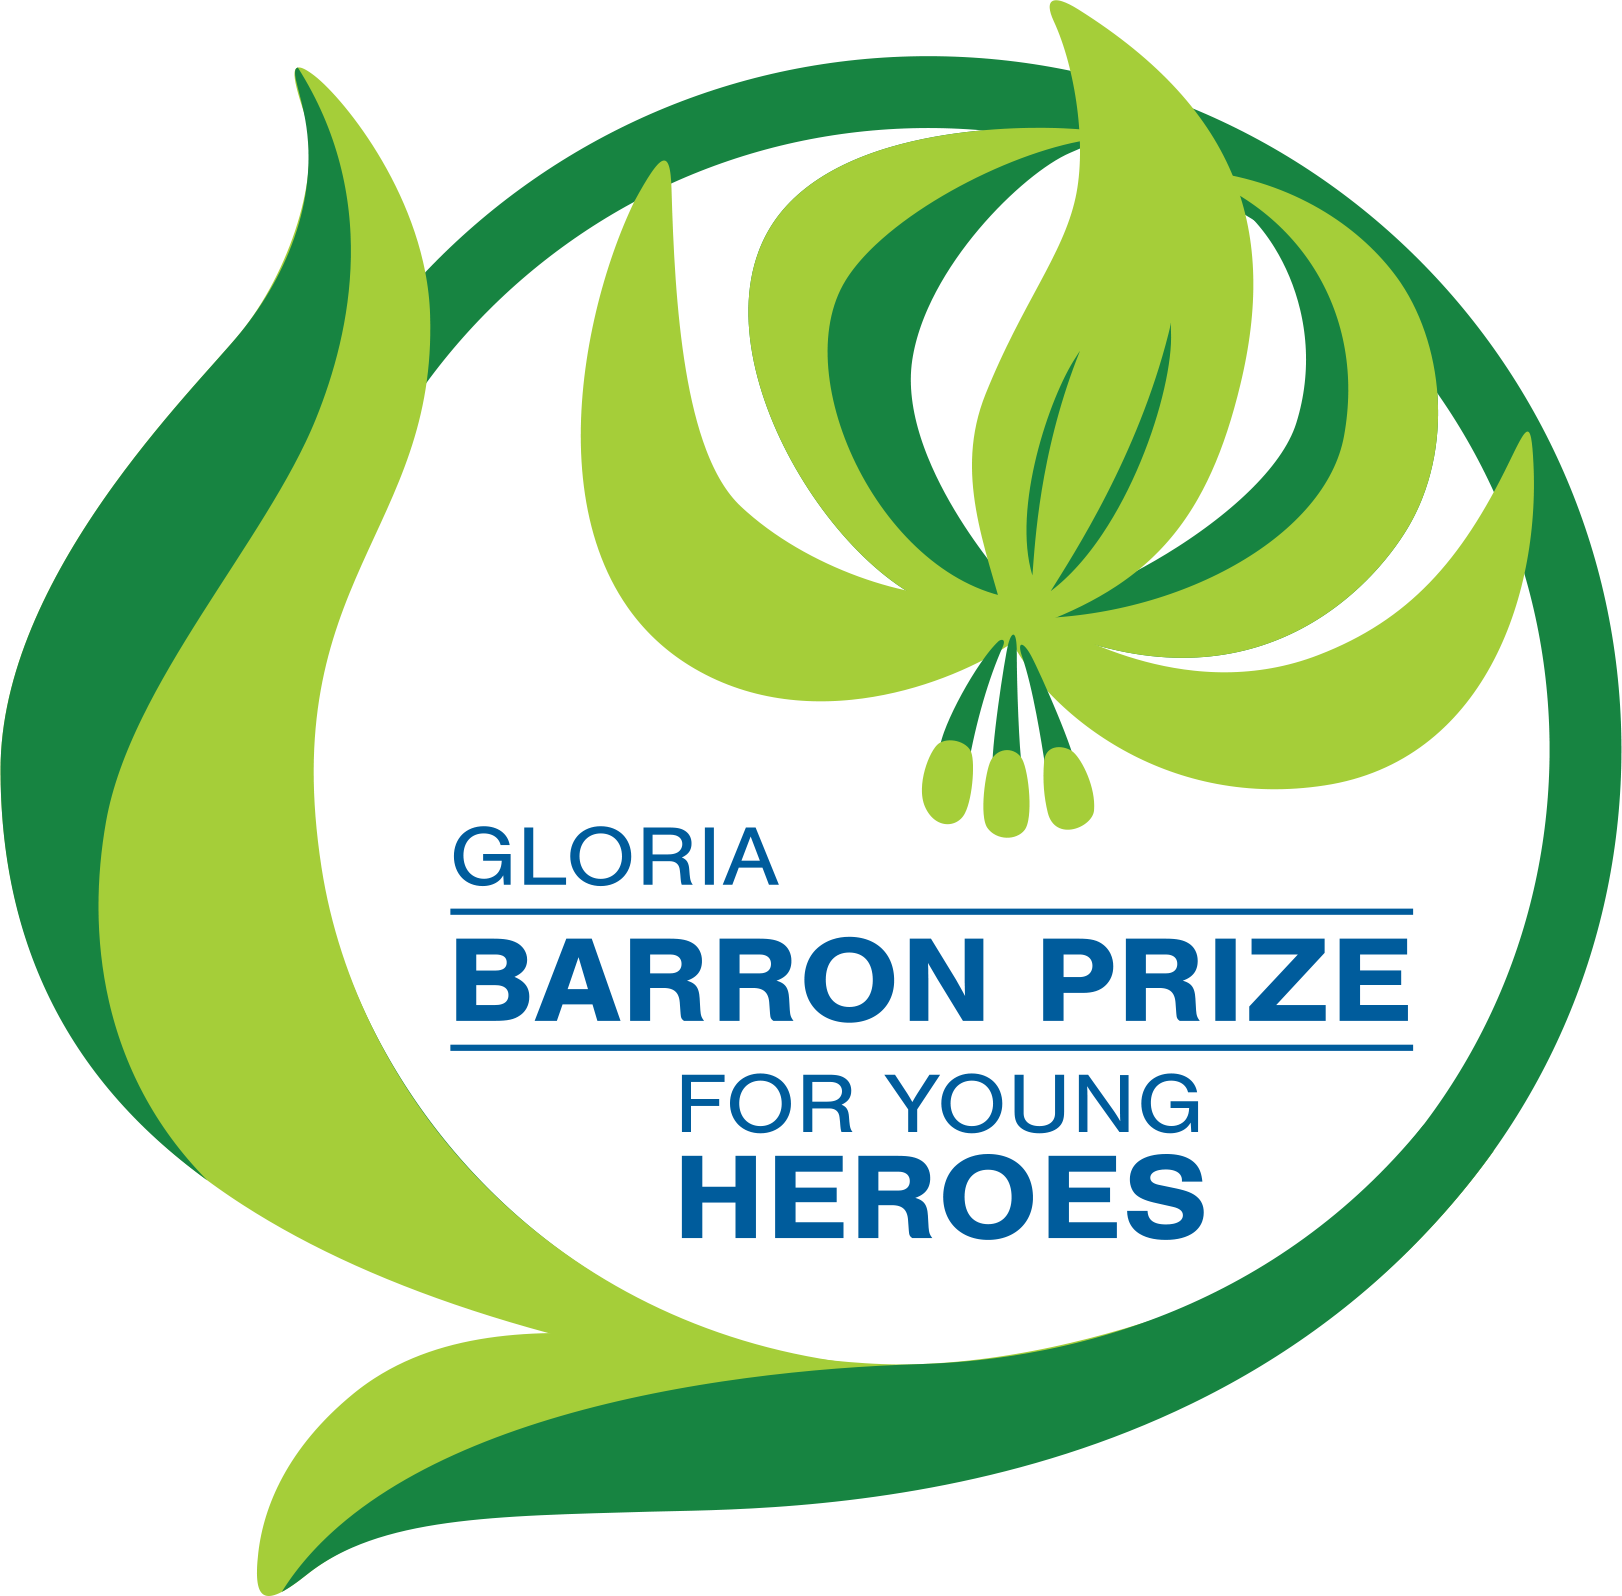 The Gloria Barron Prize for Young Heroes Celebrates 20th Anniversary as Applications for 2020 Open